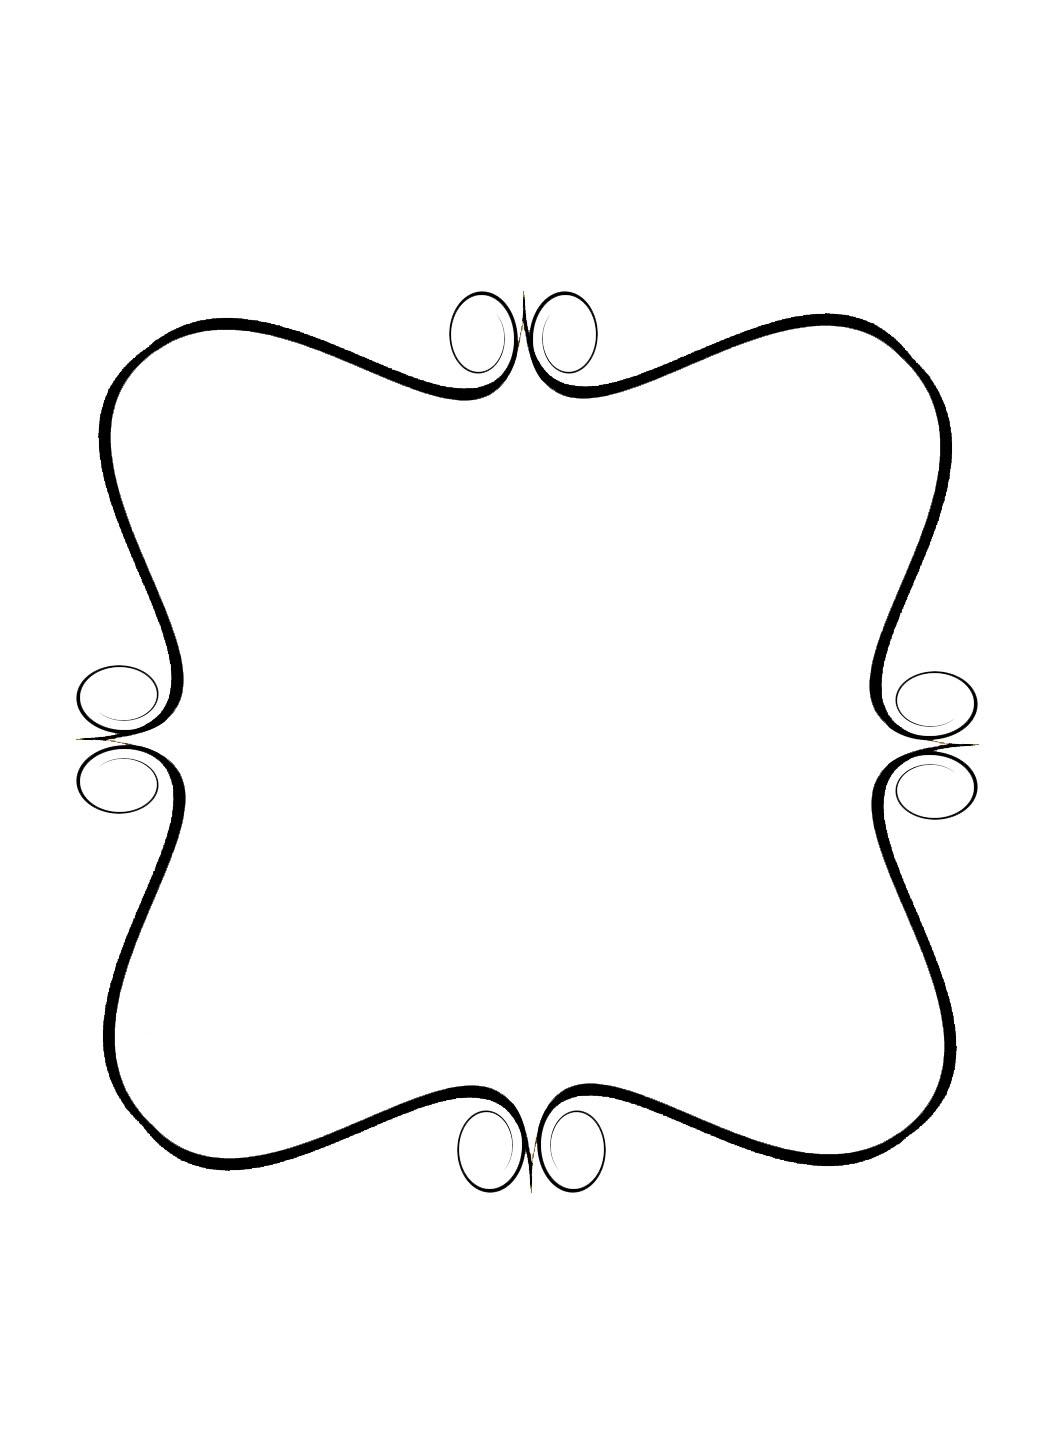 Fancy Lines Clip Art - Cliparts.co